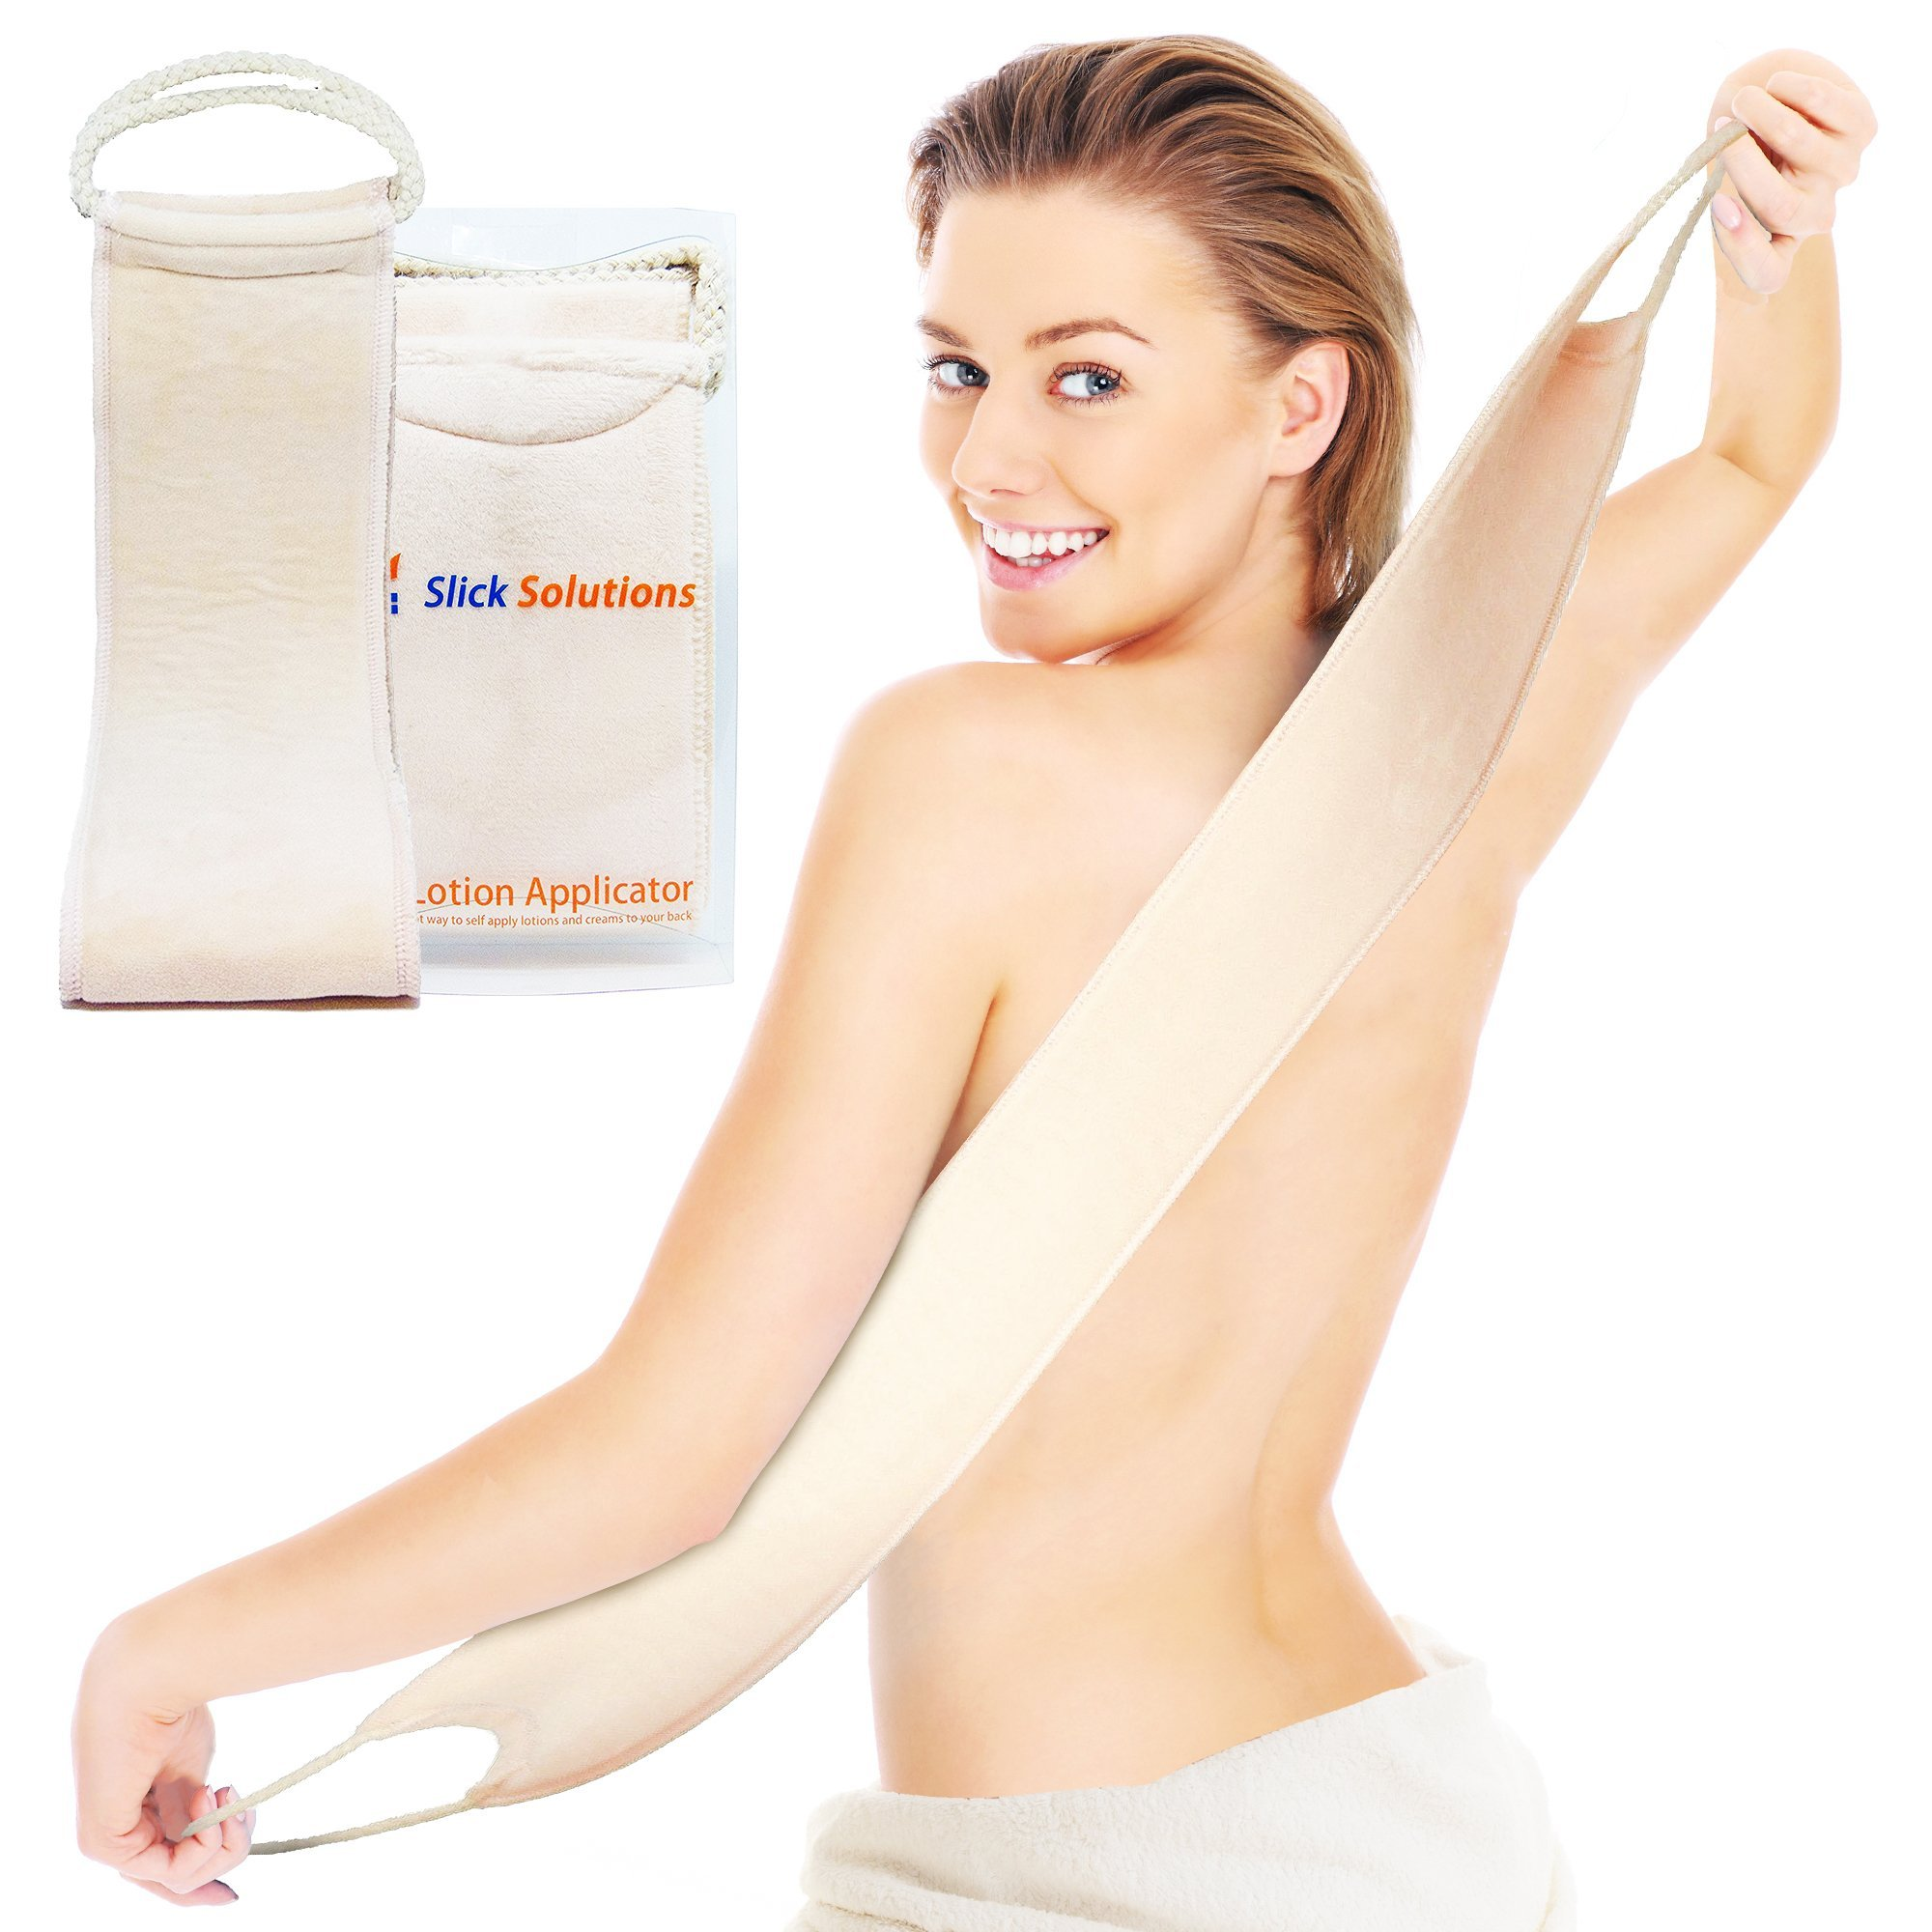 Lotion Applicator for Back - Easy Self Application of Lotions and Creams - Smooth and Even Application to Entire Back - Sun Tan Lotion Applicator